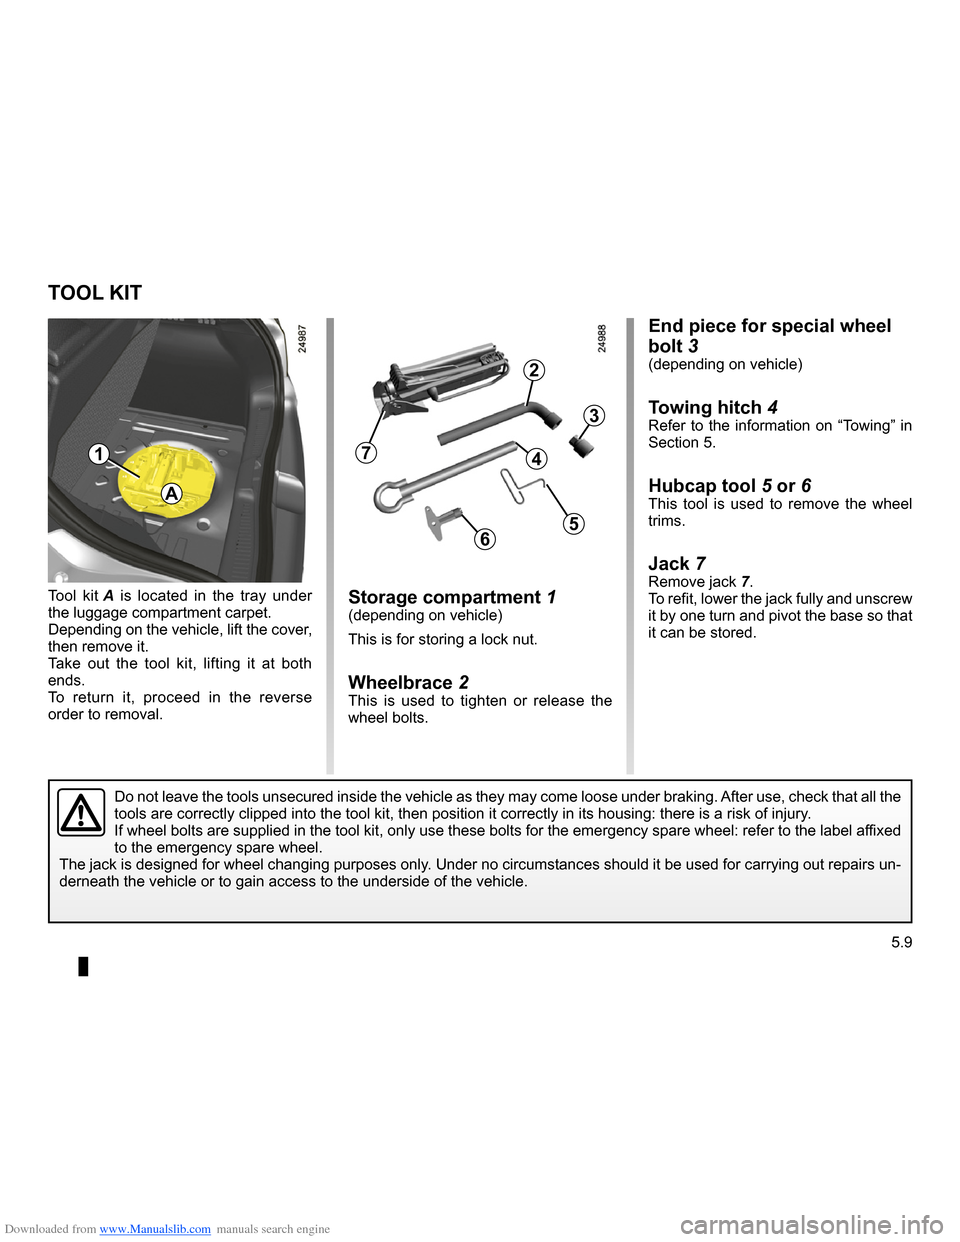 RENAULT CLIO 2009 X85 / 3.G Owners Manual, Page 197